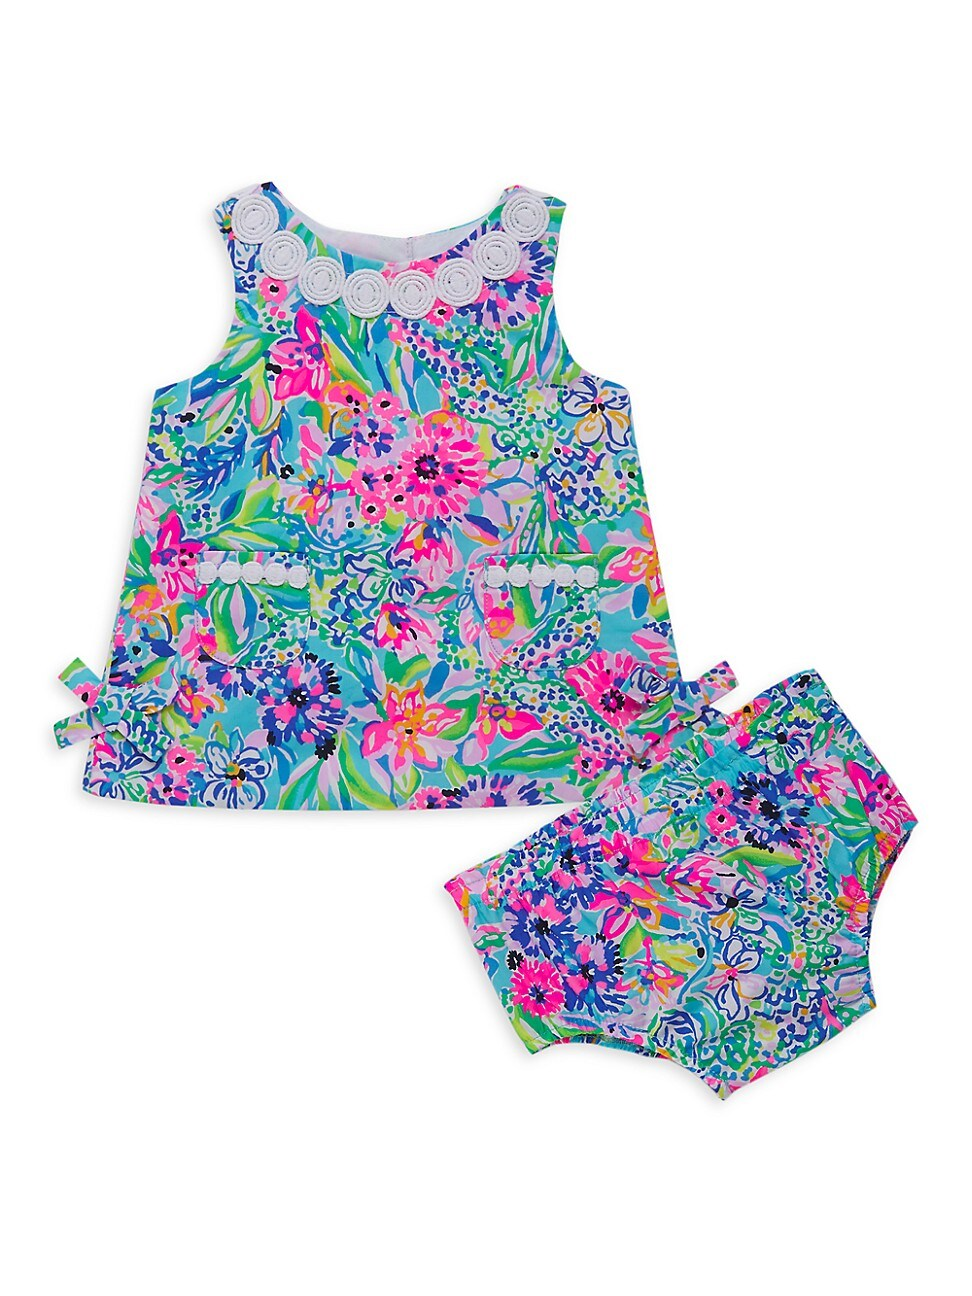 Lilly Pulitzer Baby Girl's 2-piece Shift & Bloomers Set In Neutral